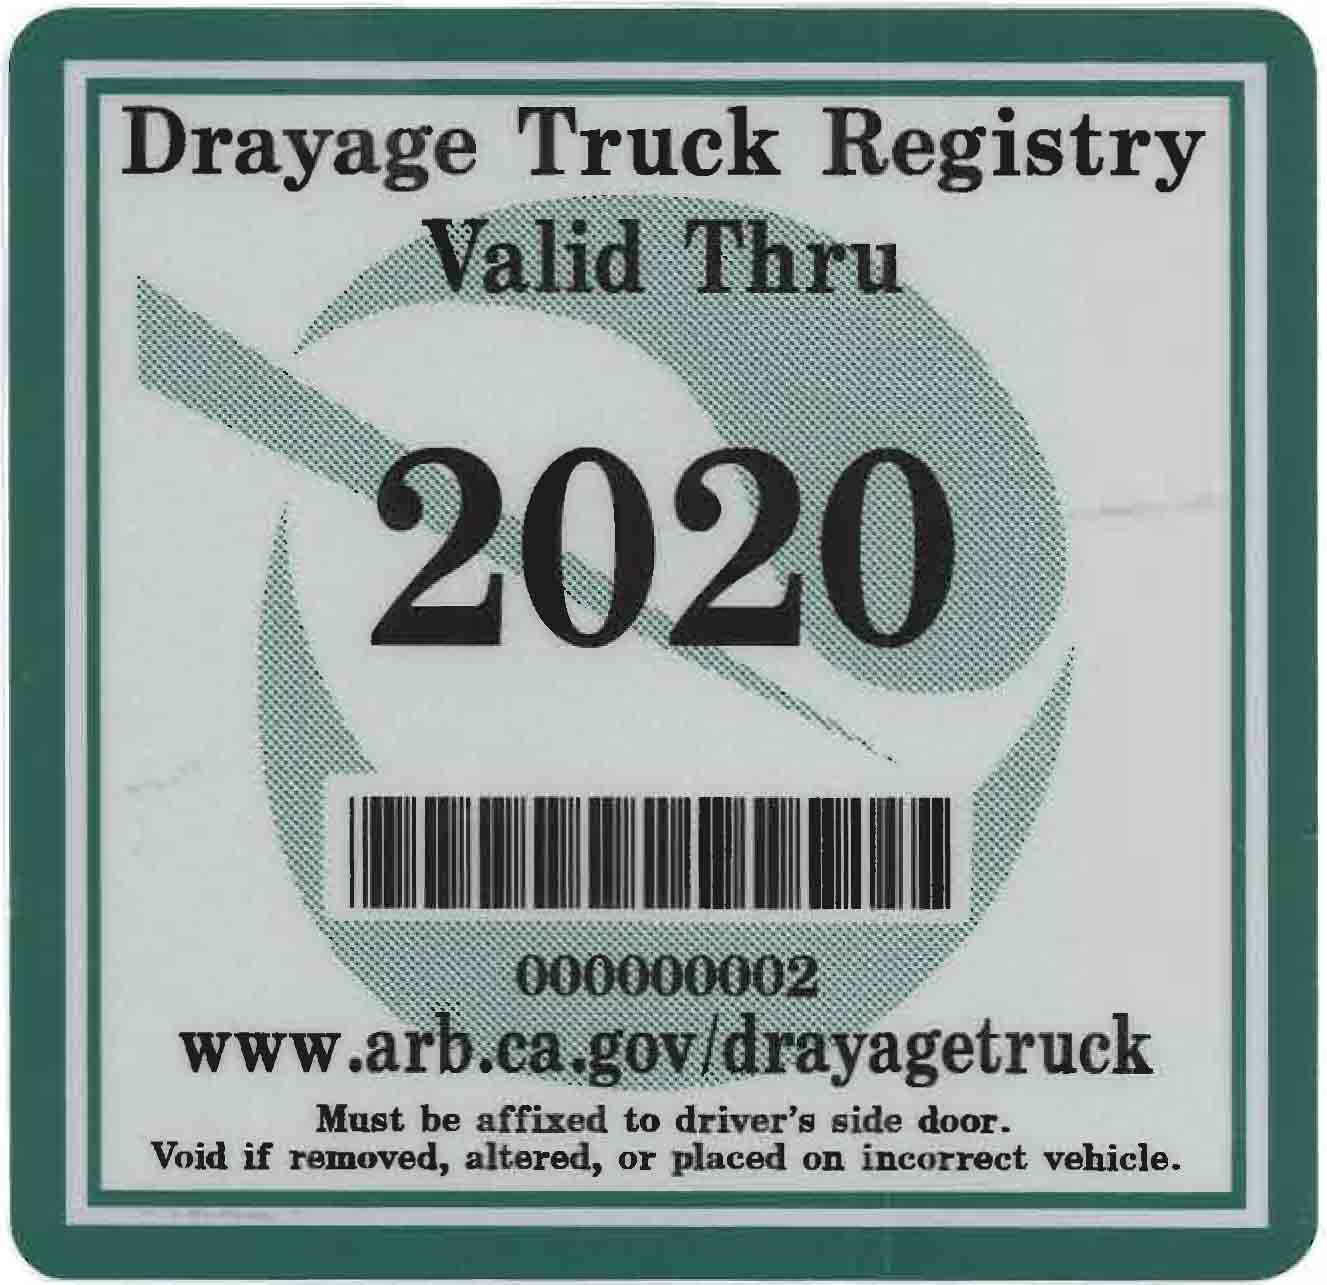 2020 compliance sticker